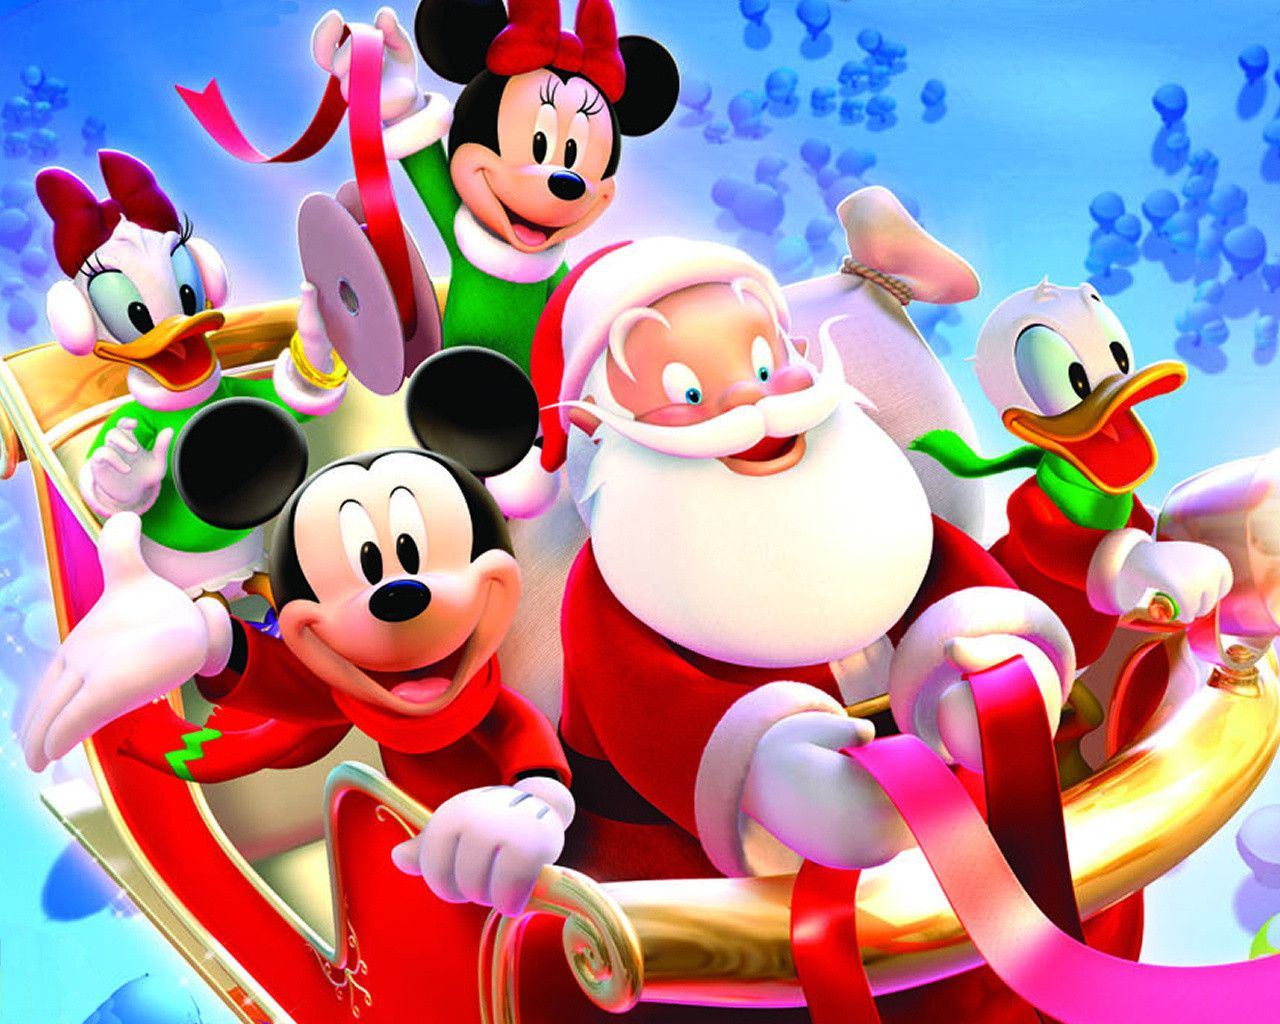 Mickey Mouse Happy Christmas Wallpaper. | Christmas Holyday ...